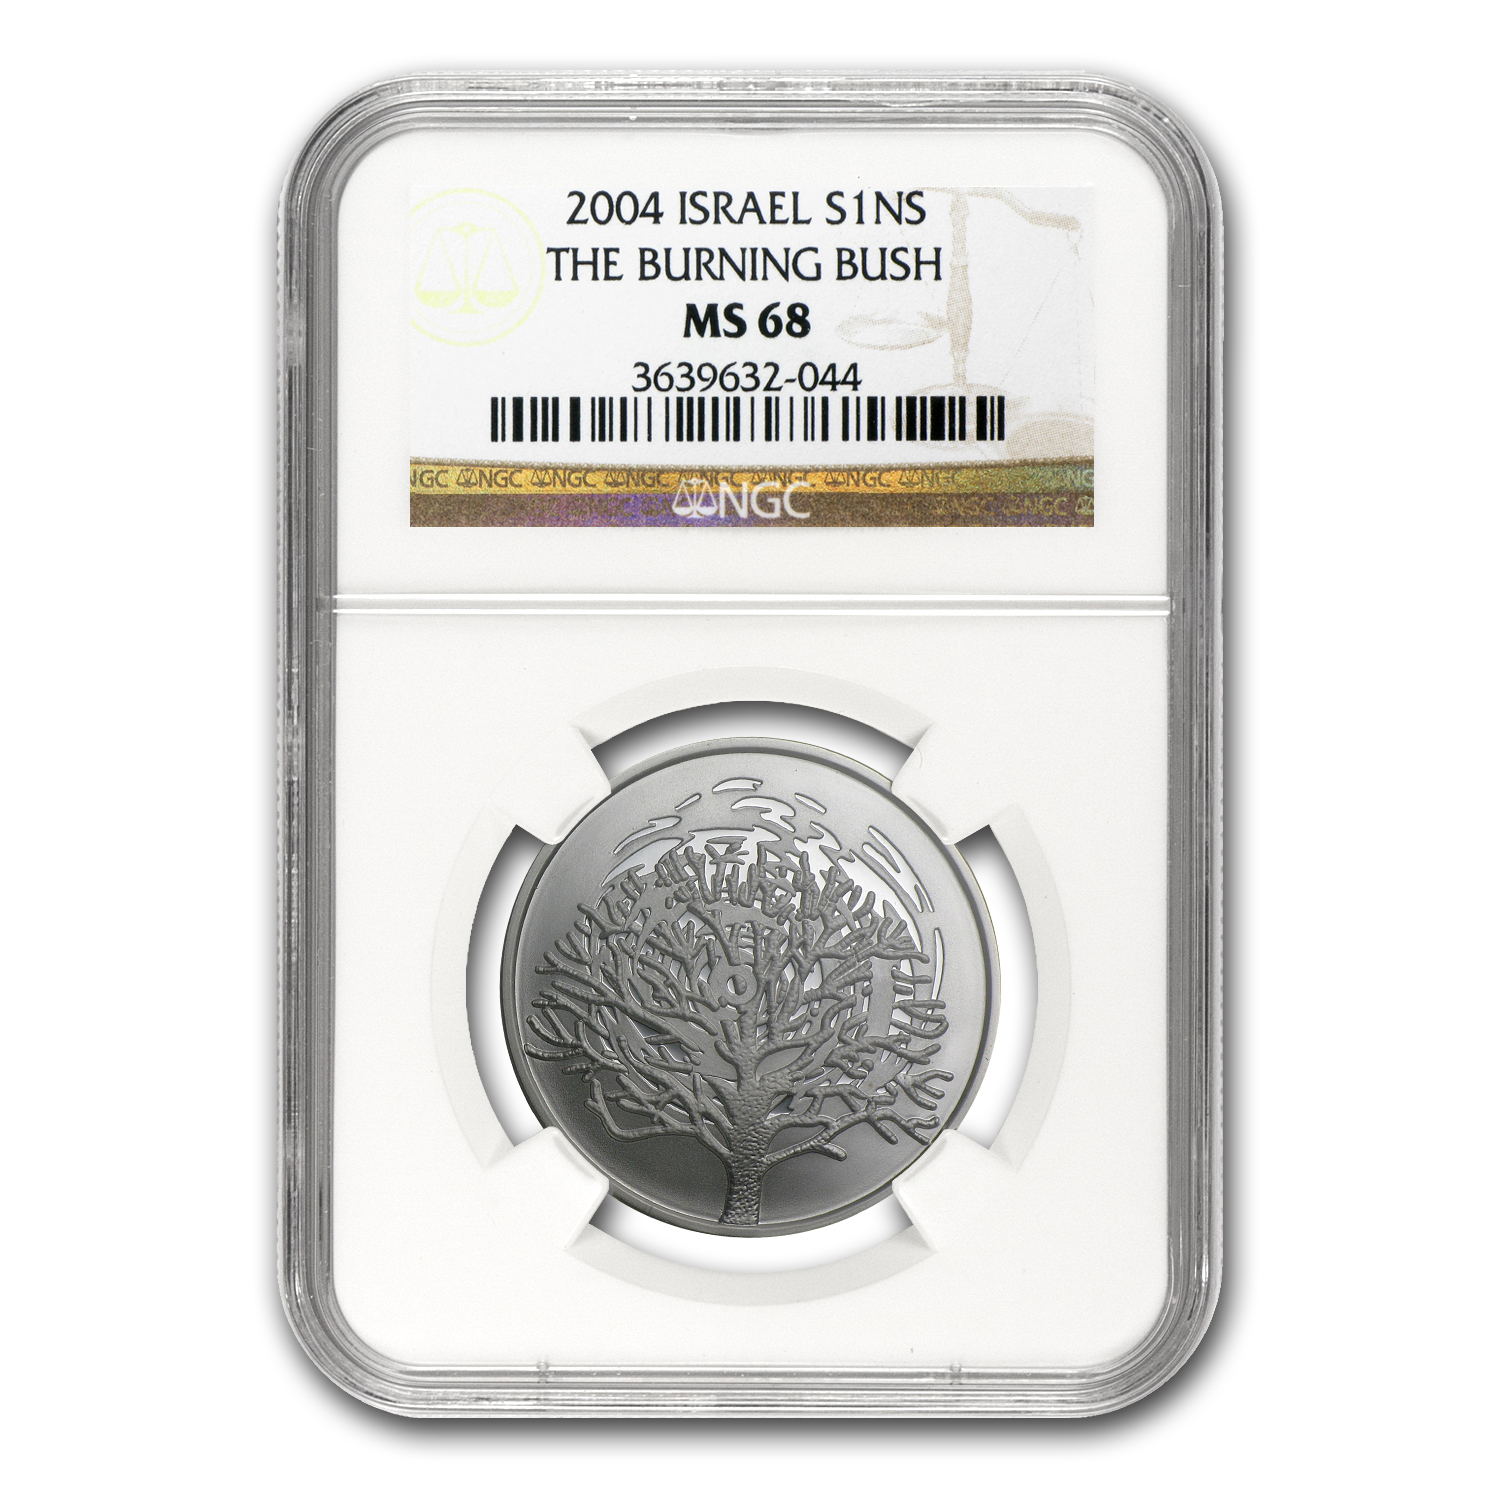 2004 Israel Silver 1 NIS The Burning Bush MS-68 NGC